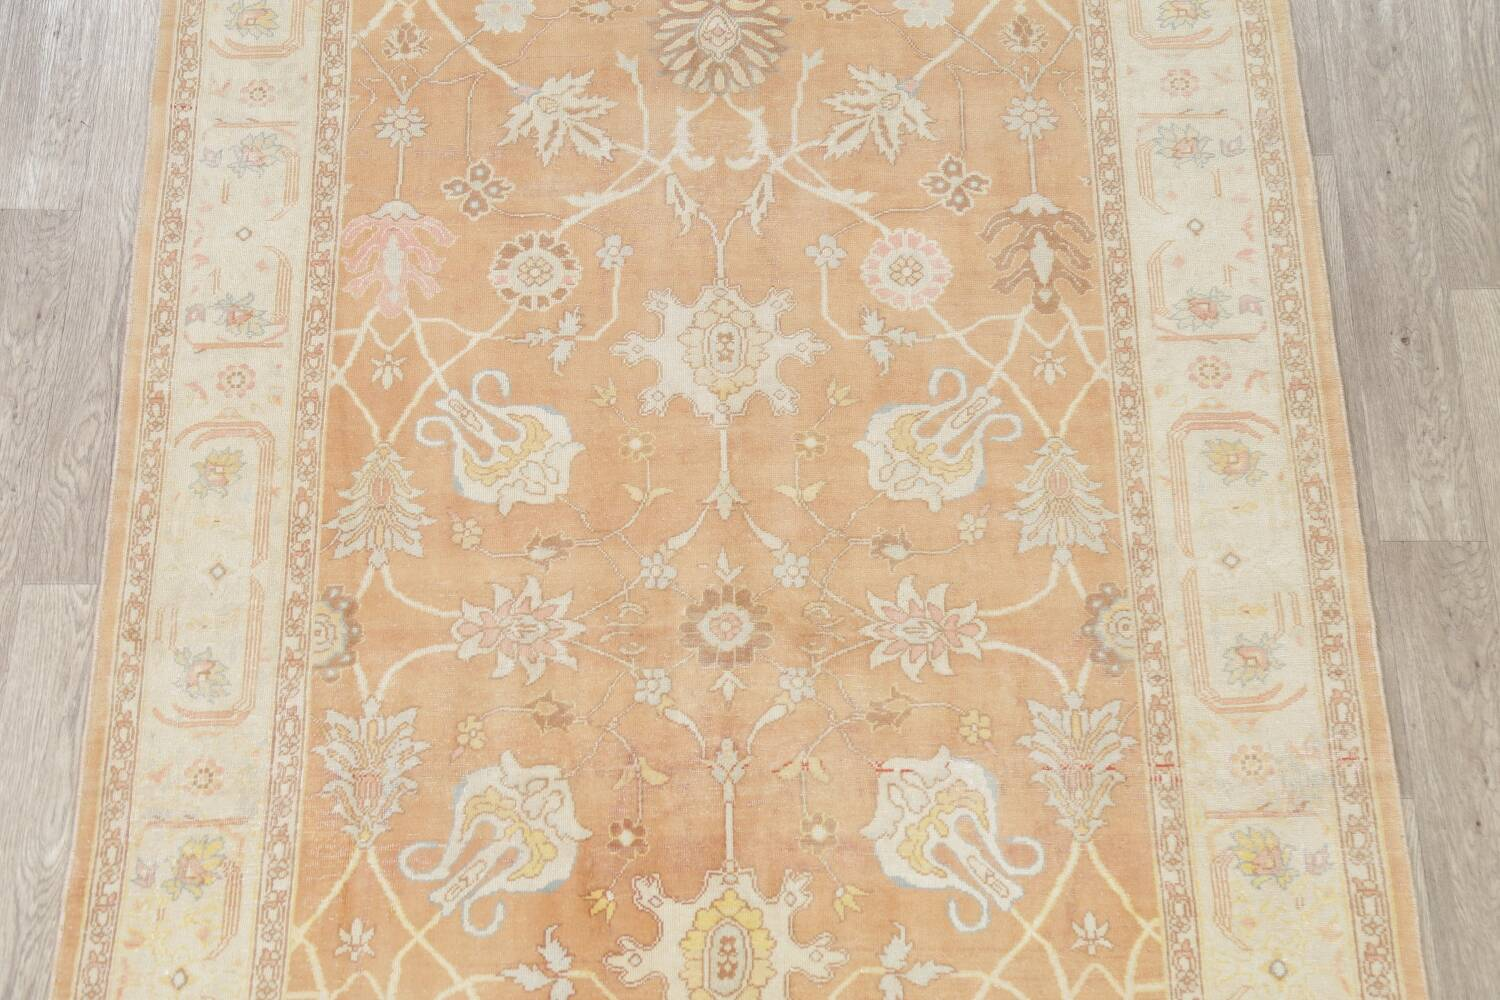 Vegetable Dye Rust Oushak Egyptian Area Rug 6x9 image 3